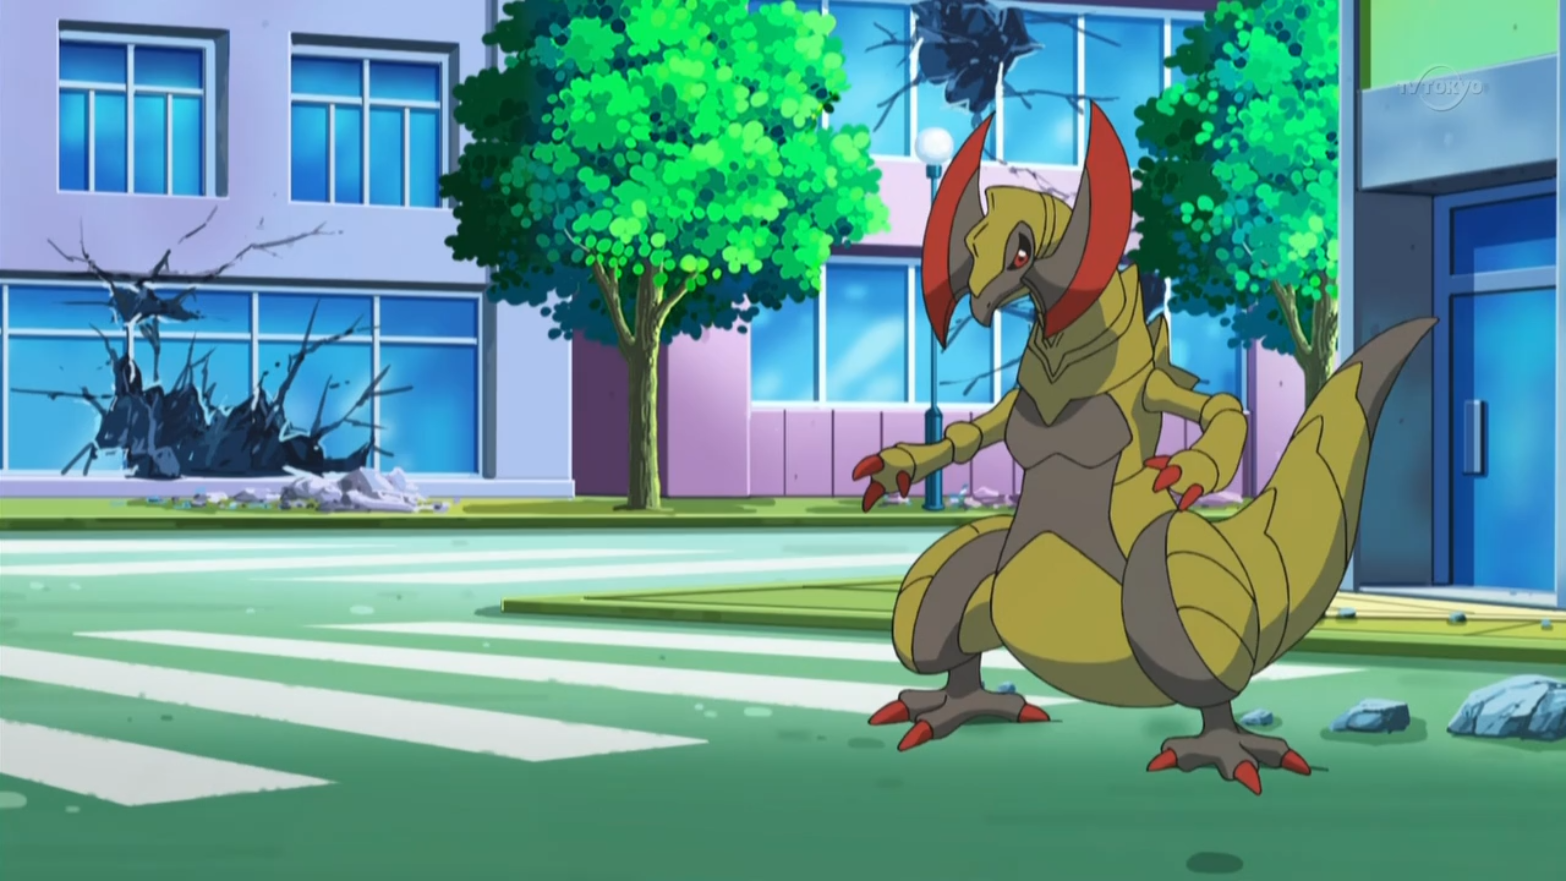 Haxorus was first seen going berserk due to being under the manipulation of Colress' mind controlling radio waves. Iris tried to have Dragonite battle Haxorus, but he also went under Colress' control. N tried to communicate with Haxorus and Dragonite to try and calm them down, but ended up getting hurt in the process. After Colress' machine was destroyed, Haxorus and Dragonite returned to normal.